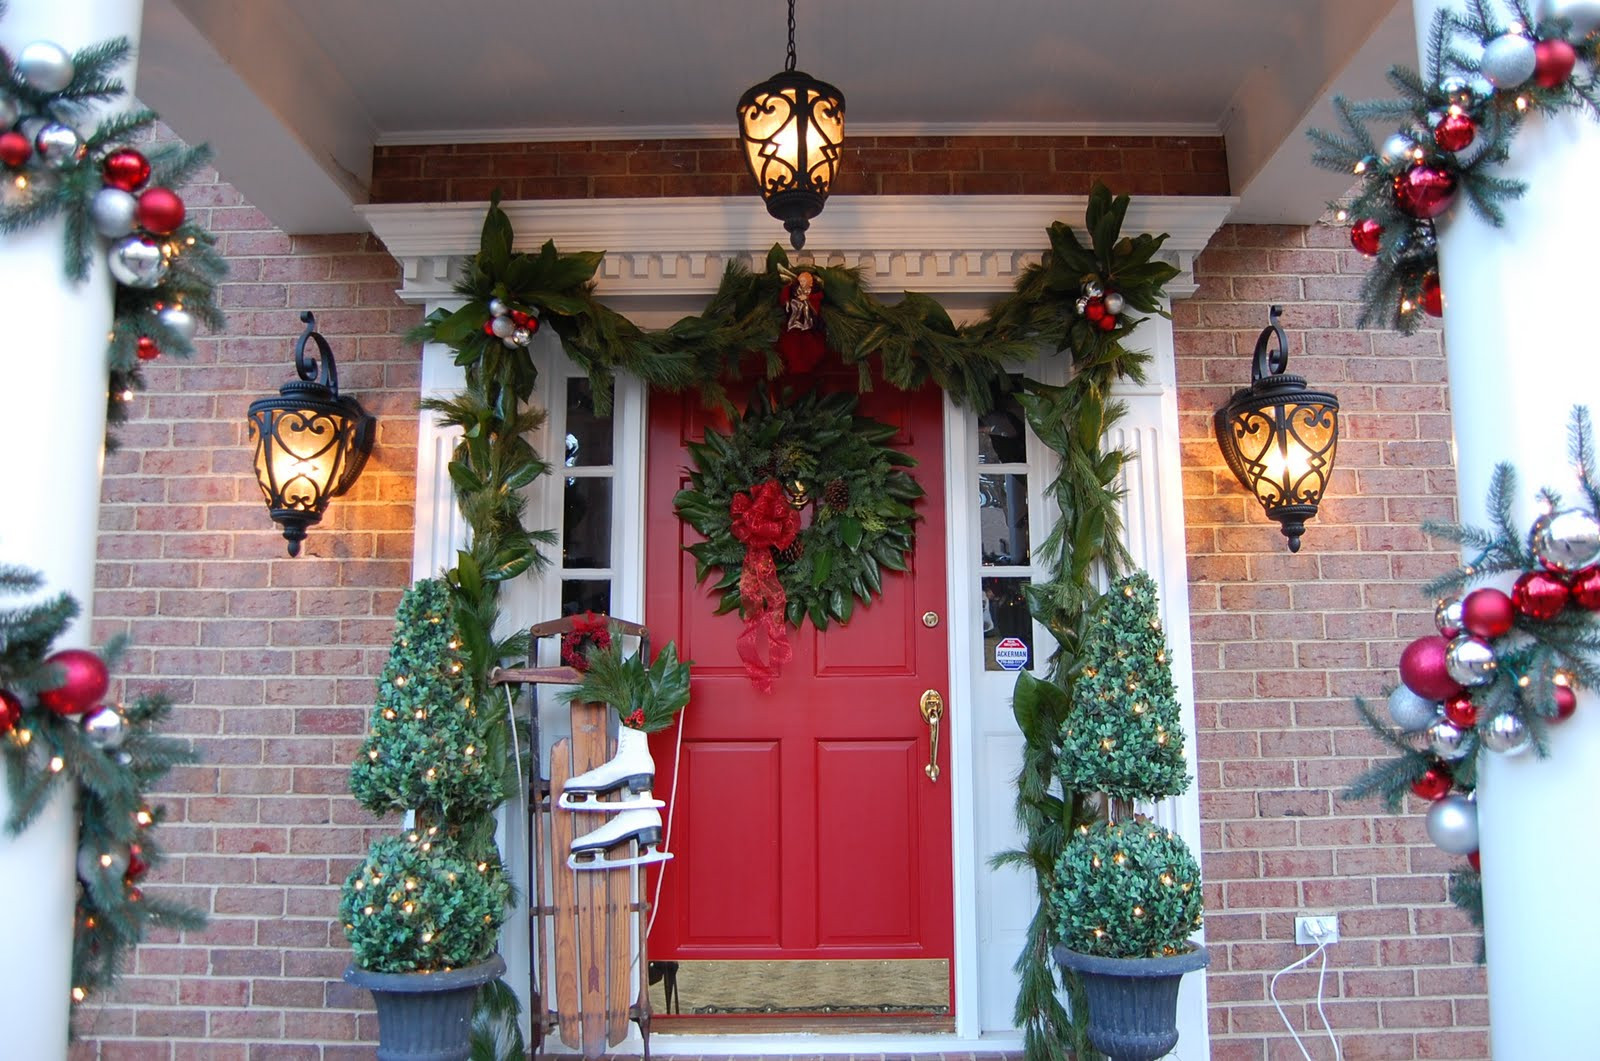 Christmas Decoration Ideas Unique 50 Best Outdoor Christmas Decorations for 2016 Of Amazing 45 Photos Christmas Decoration Ideas